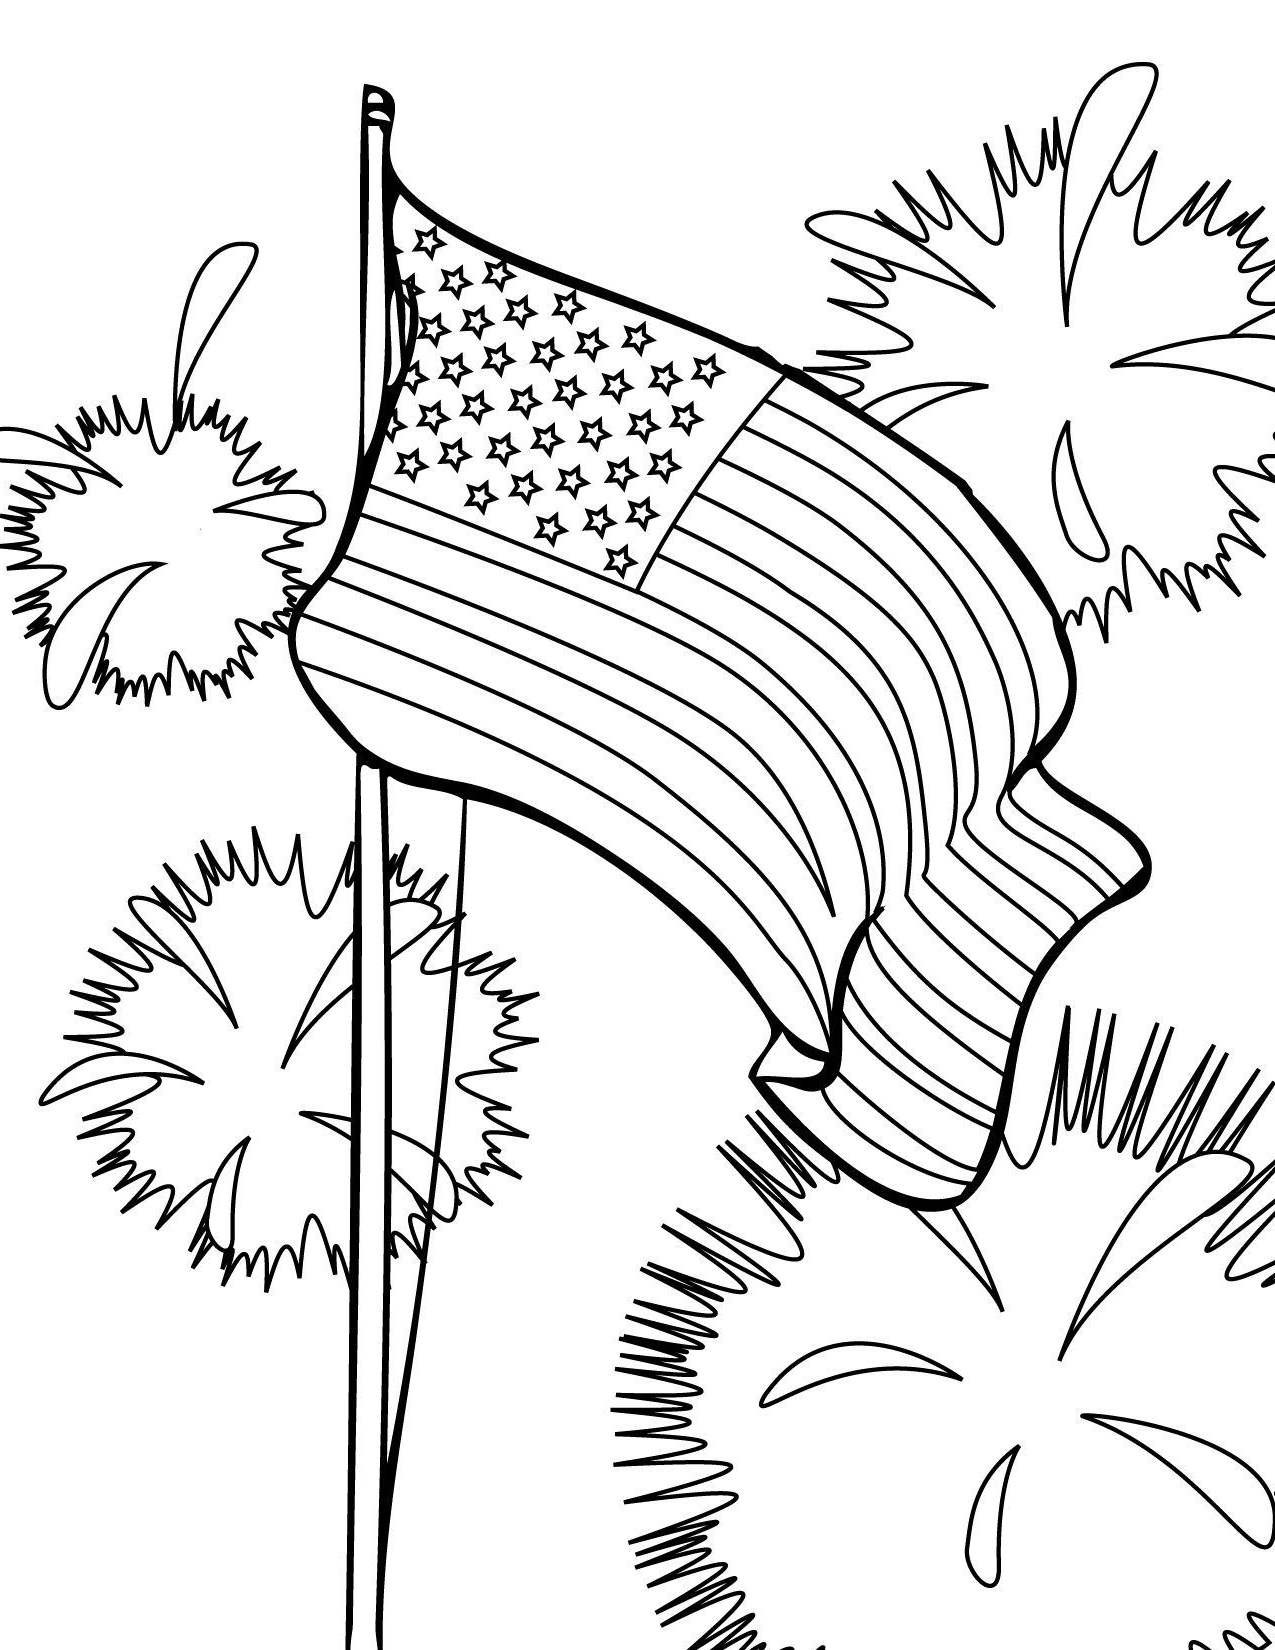 american flag coloring american flag coloring pages to download and print for free flag coloring american